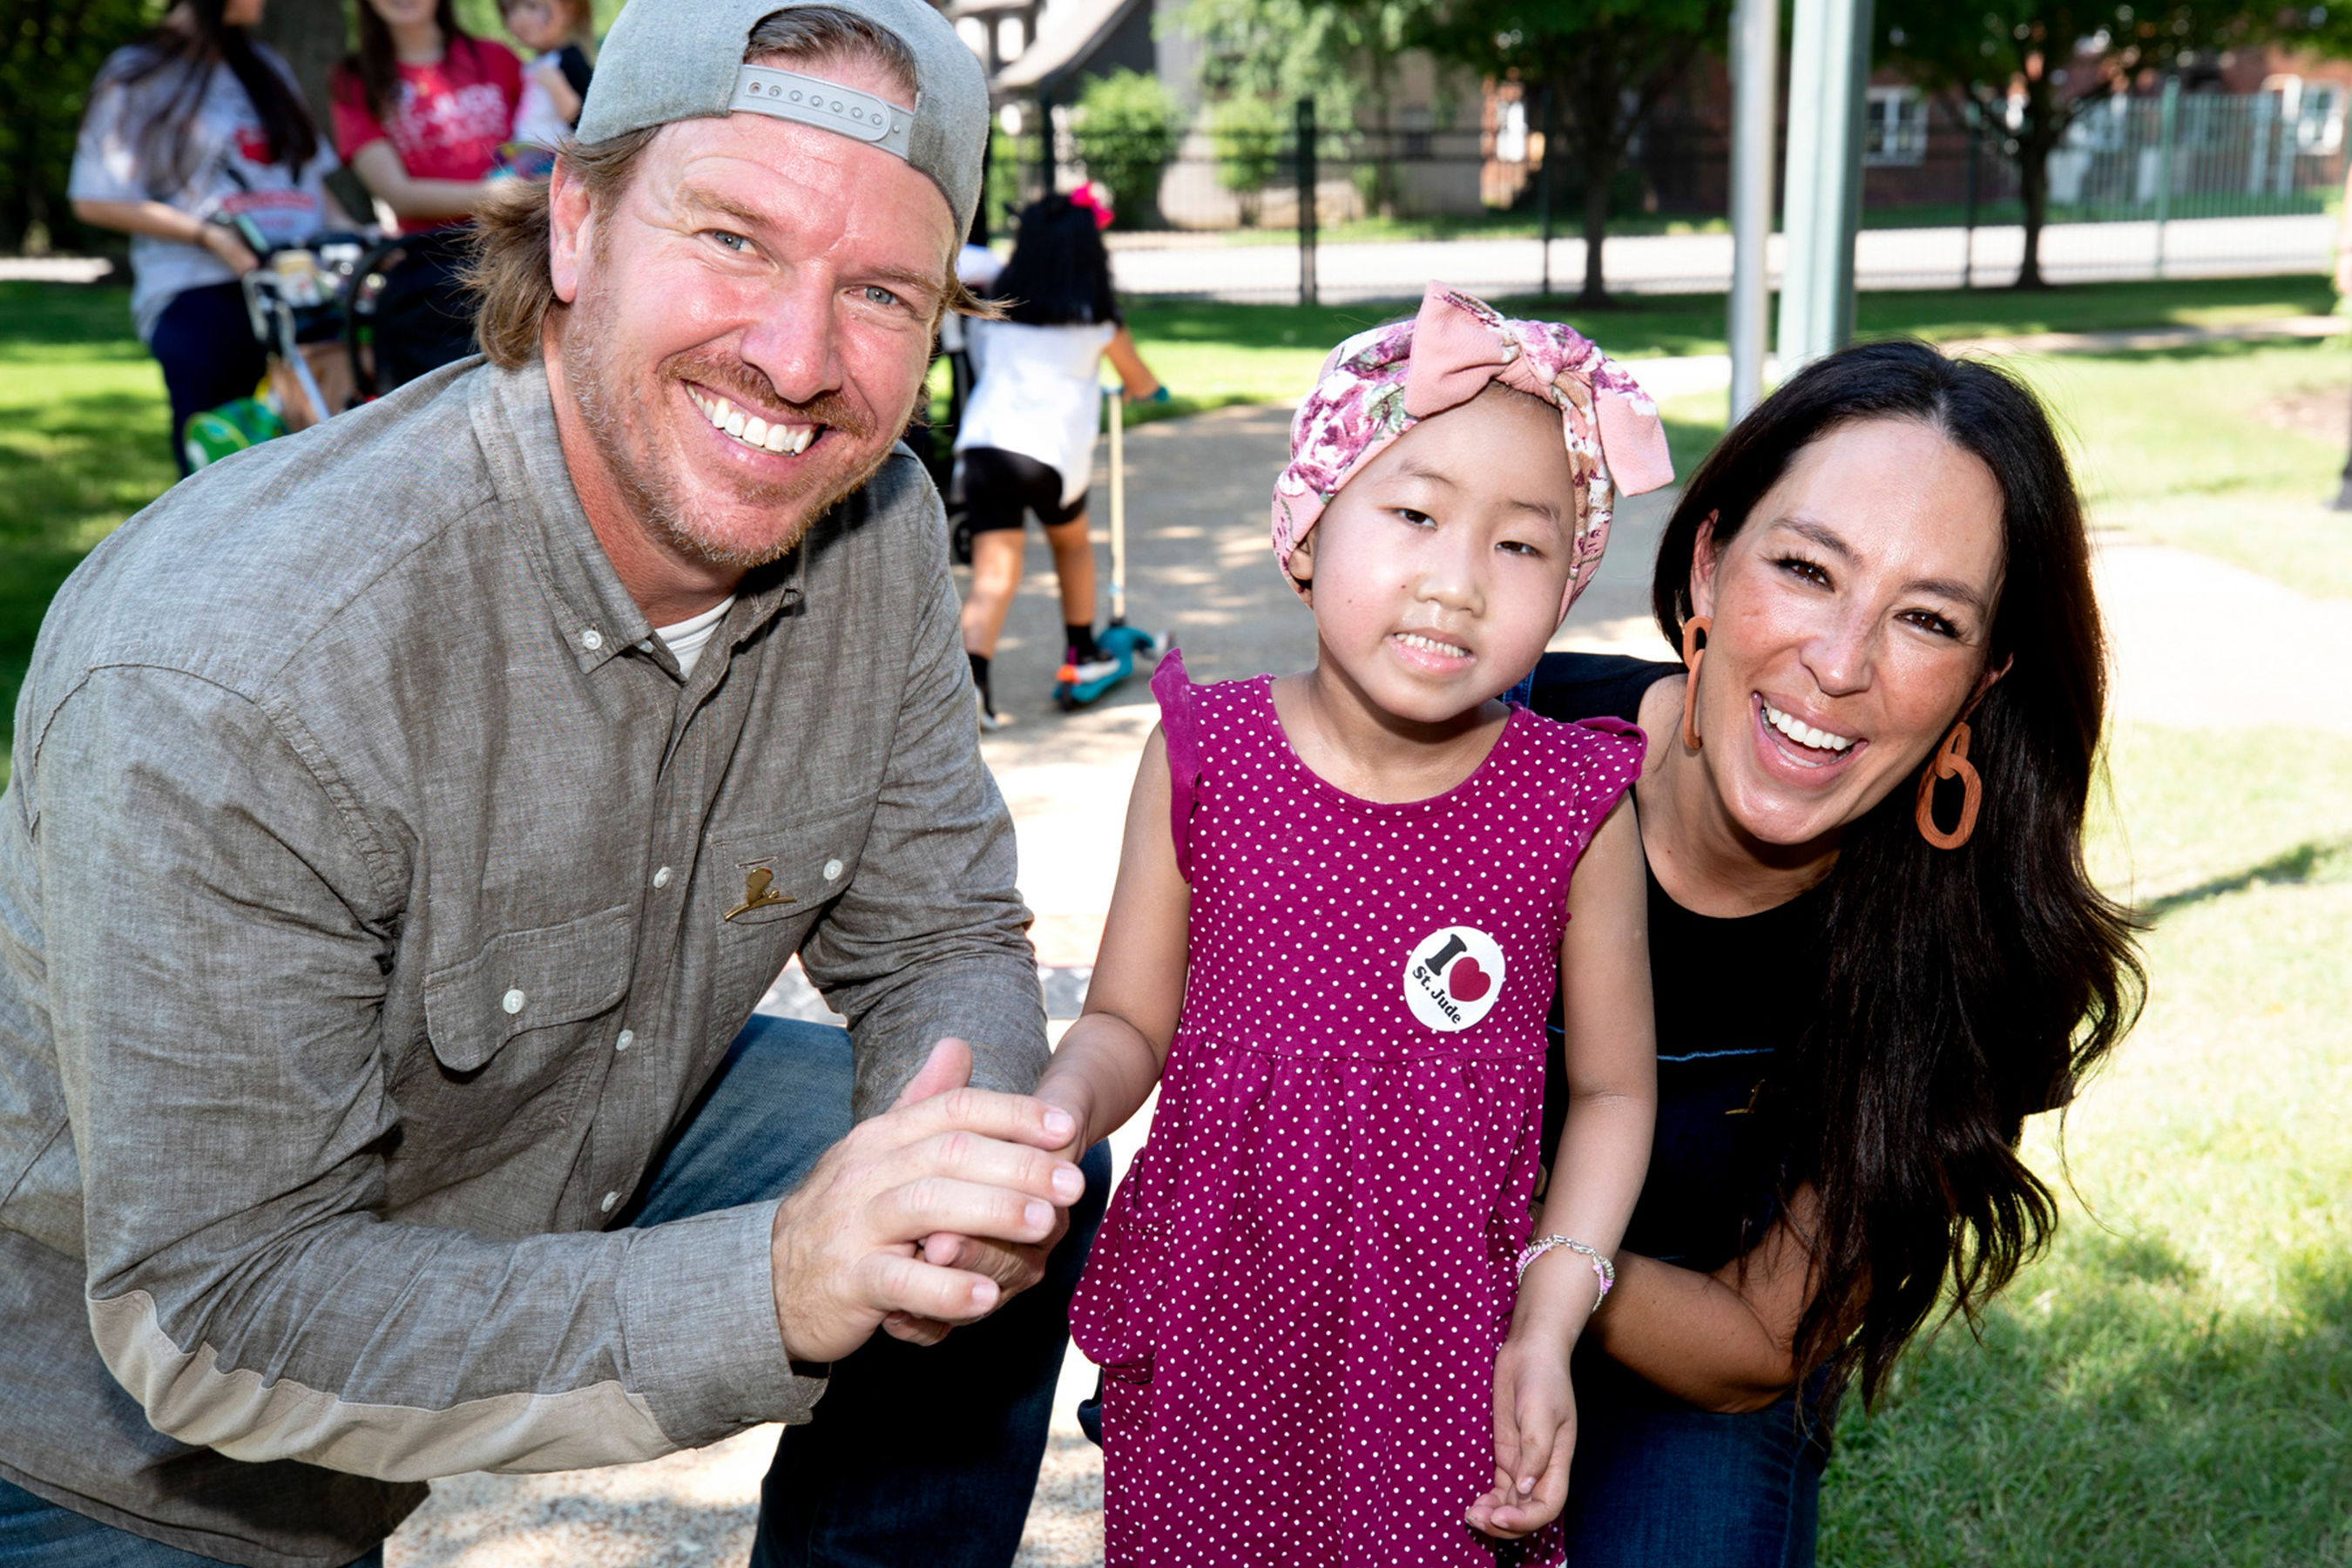 Chip and Joanna Gaines Present $1.5 Million Donation and Build a Playhouse for St. Jude